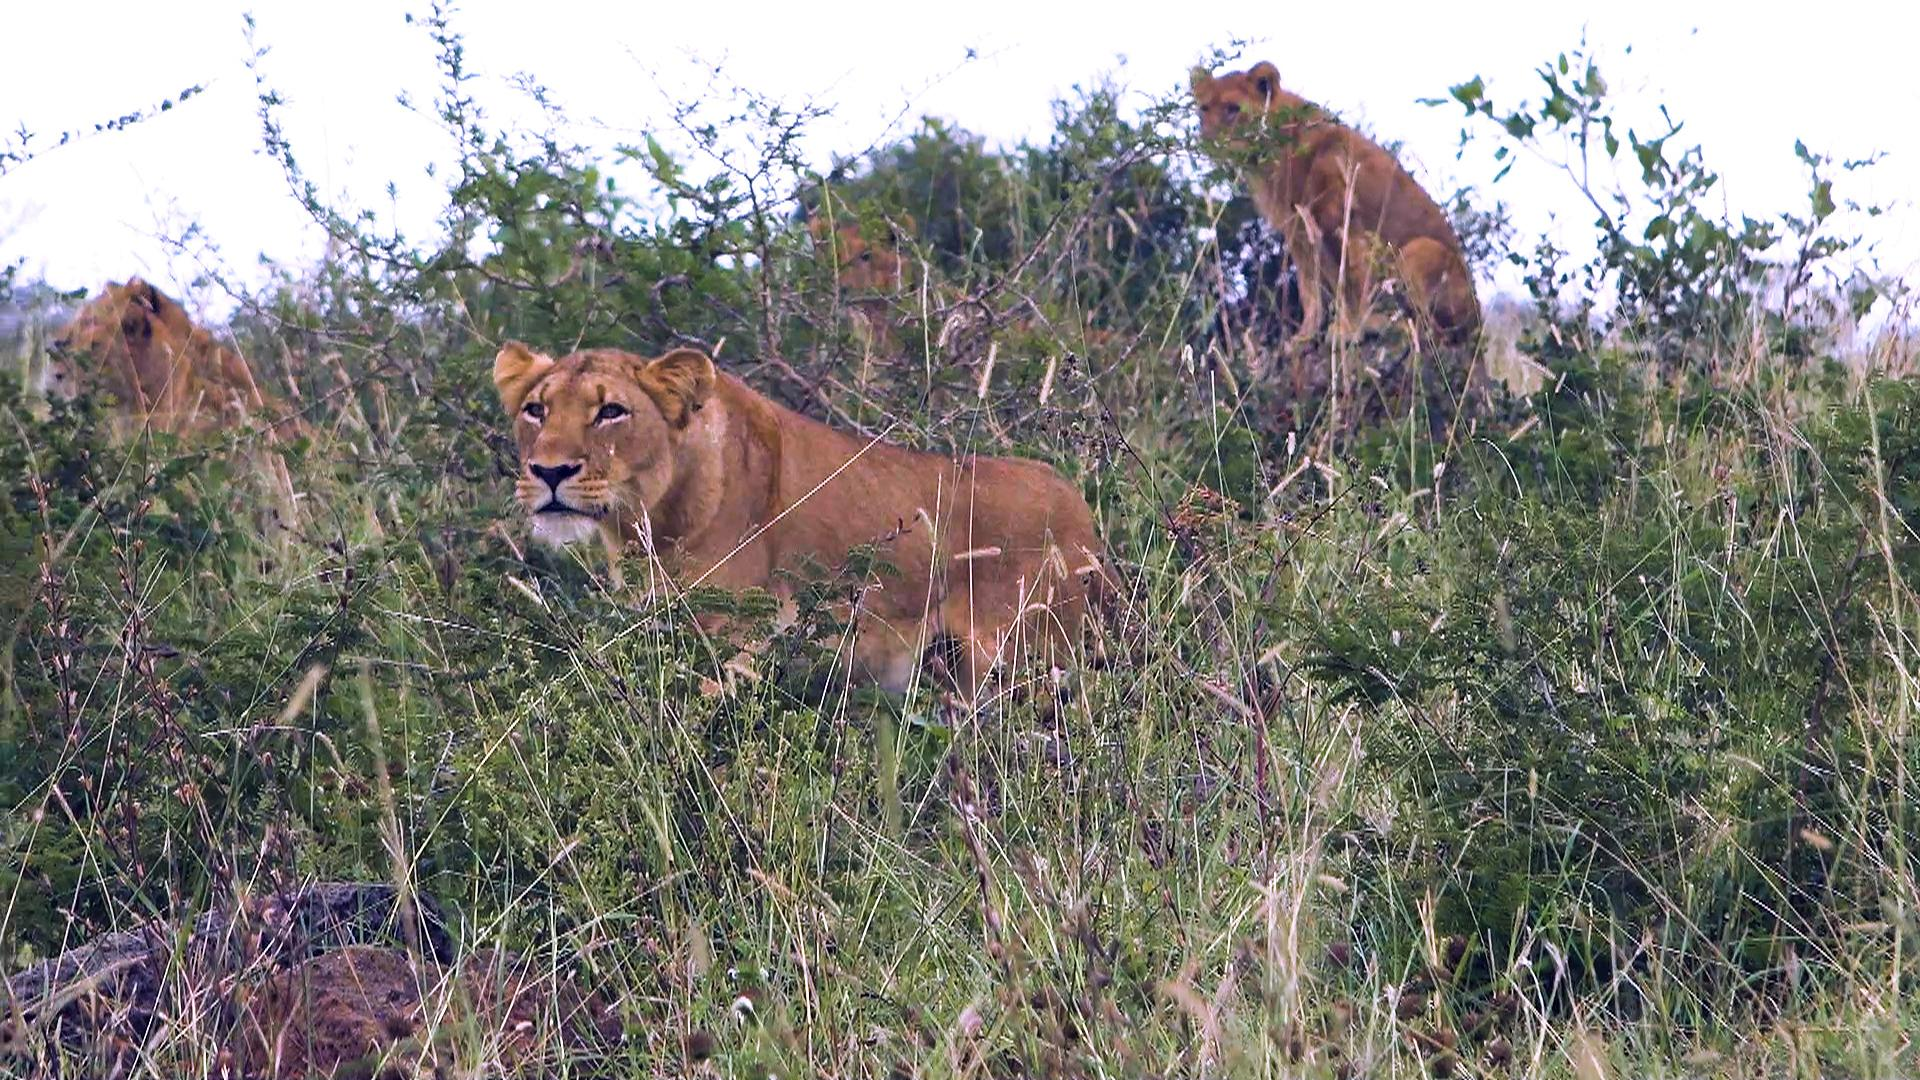 A Pride of Lions Killed and Ate a Group of Rhino Poachers Who Broke Into a Wildlife Reserve